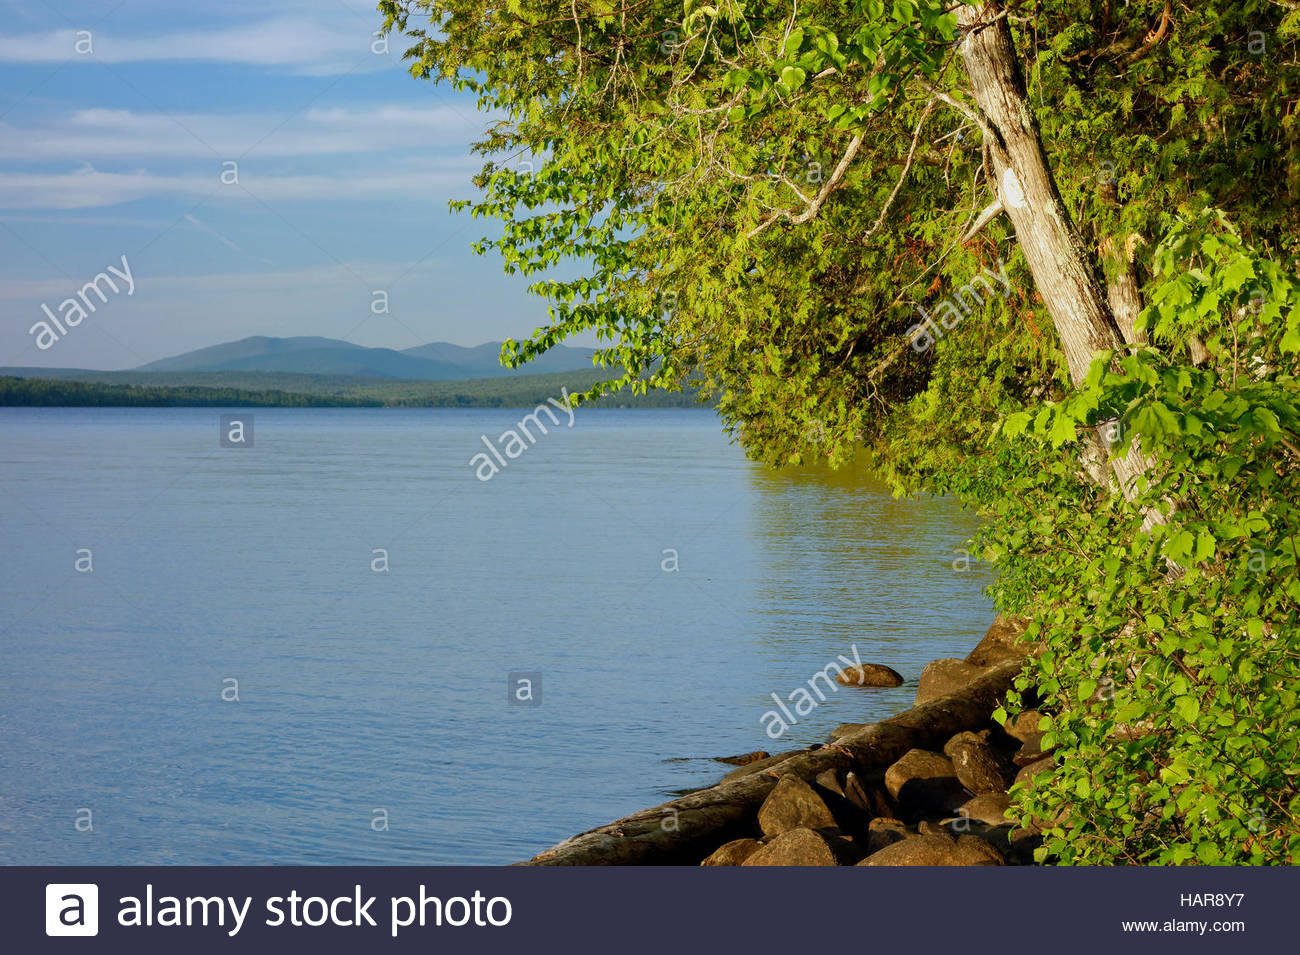 Rangeley Lakes State Park, Maine. - Stock Image